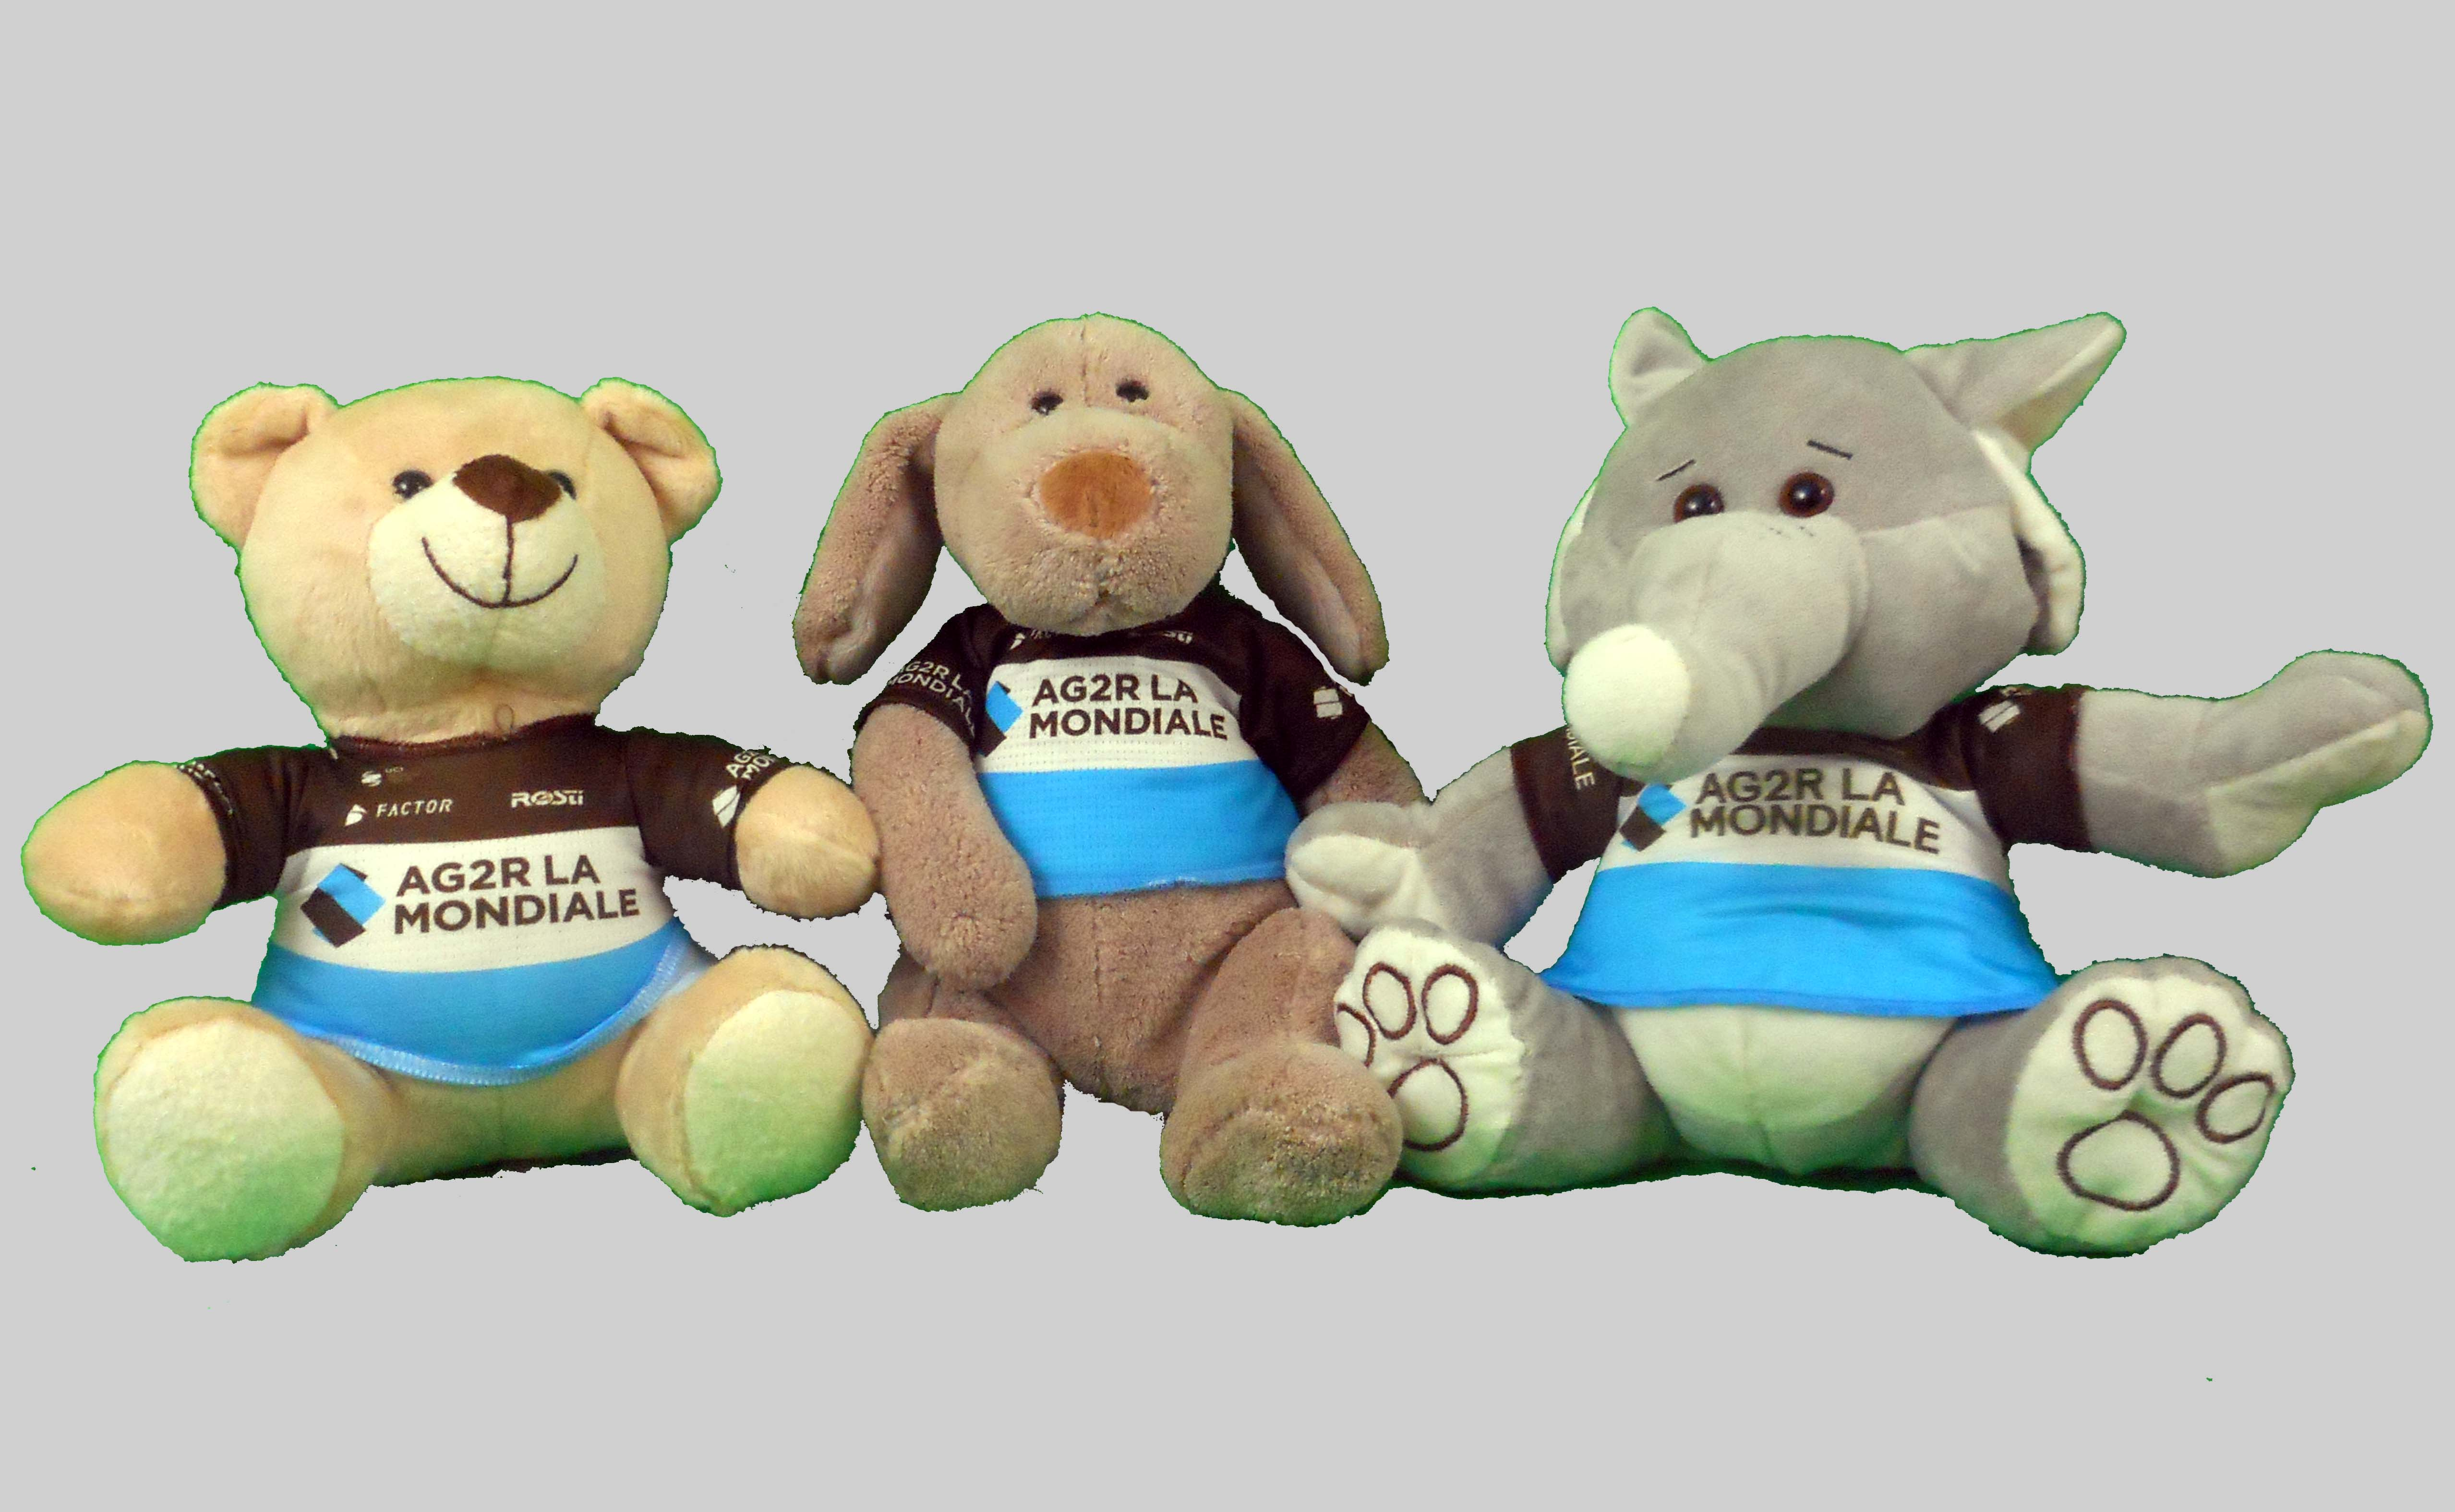 Sylvain Coulon - camiscyclephile - Collection Maillots Cyclistes - Les peluches mascottes Ag2r - La Mondiale